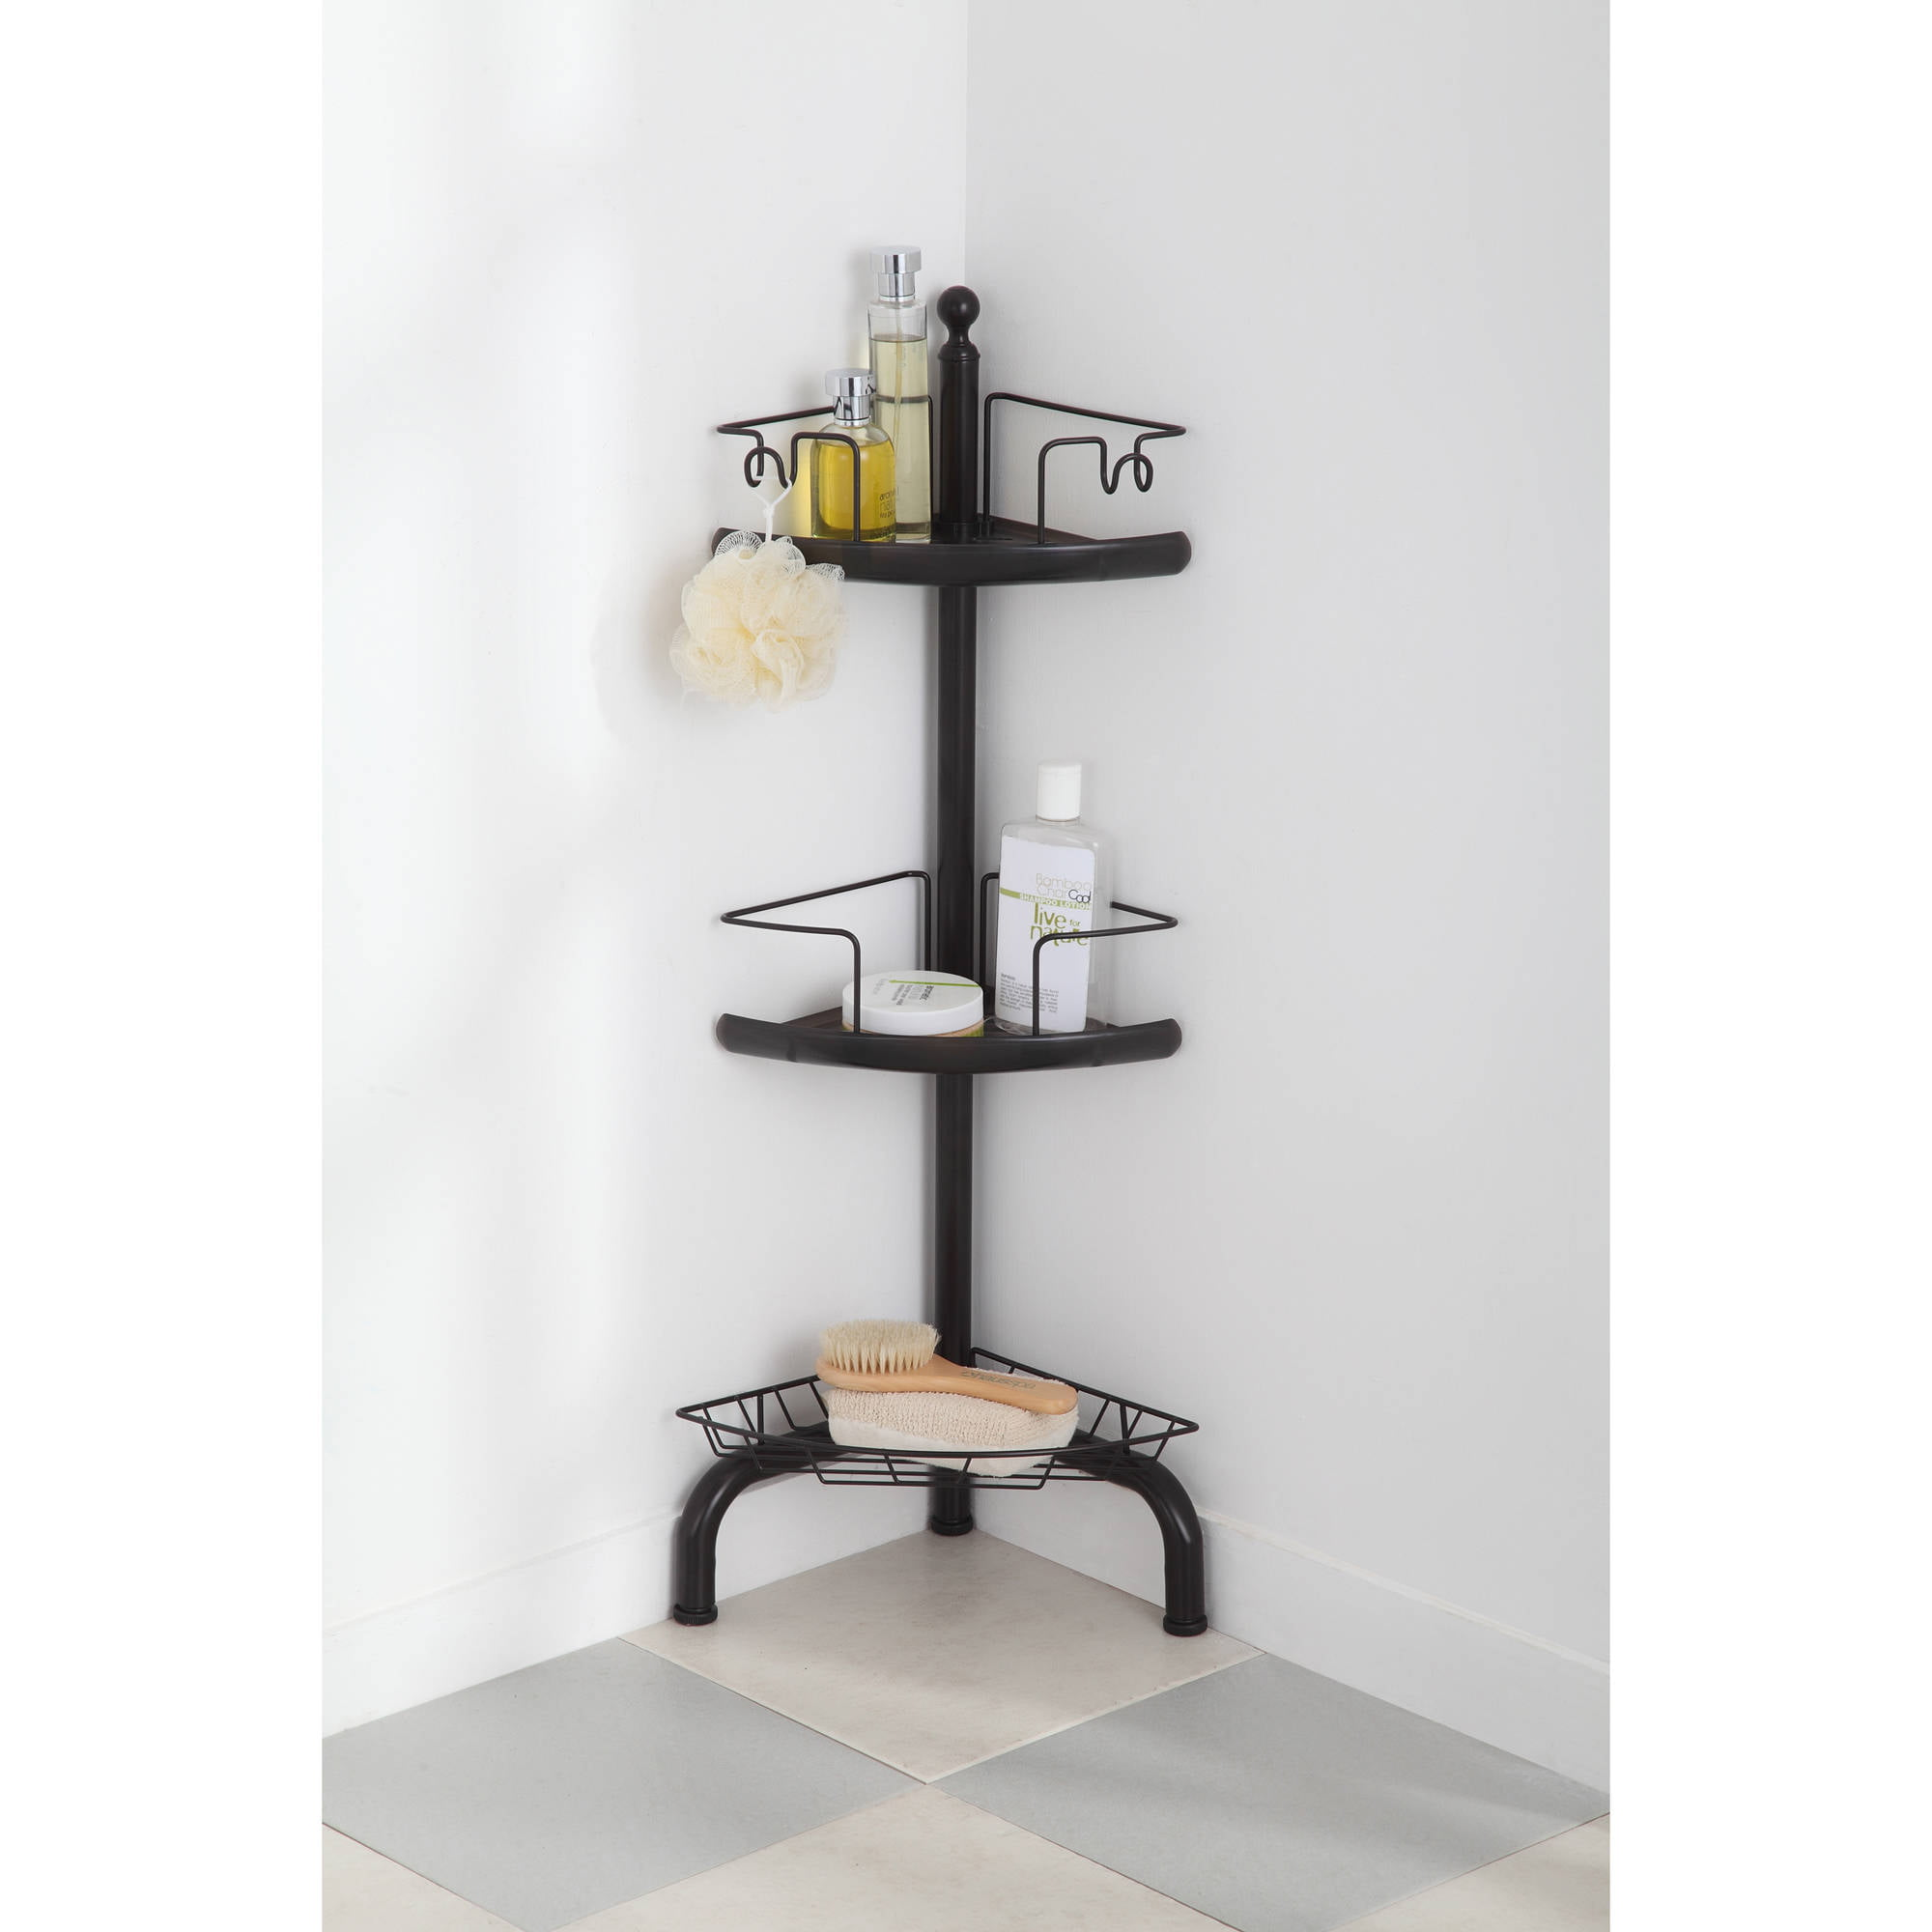 HomeZone 3 Tier Adjustable Corner Shower Caddy Oil Rubbed Bronze